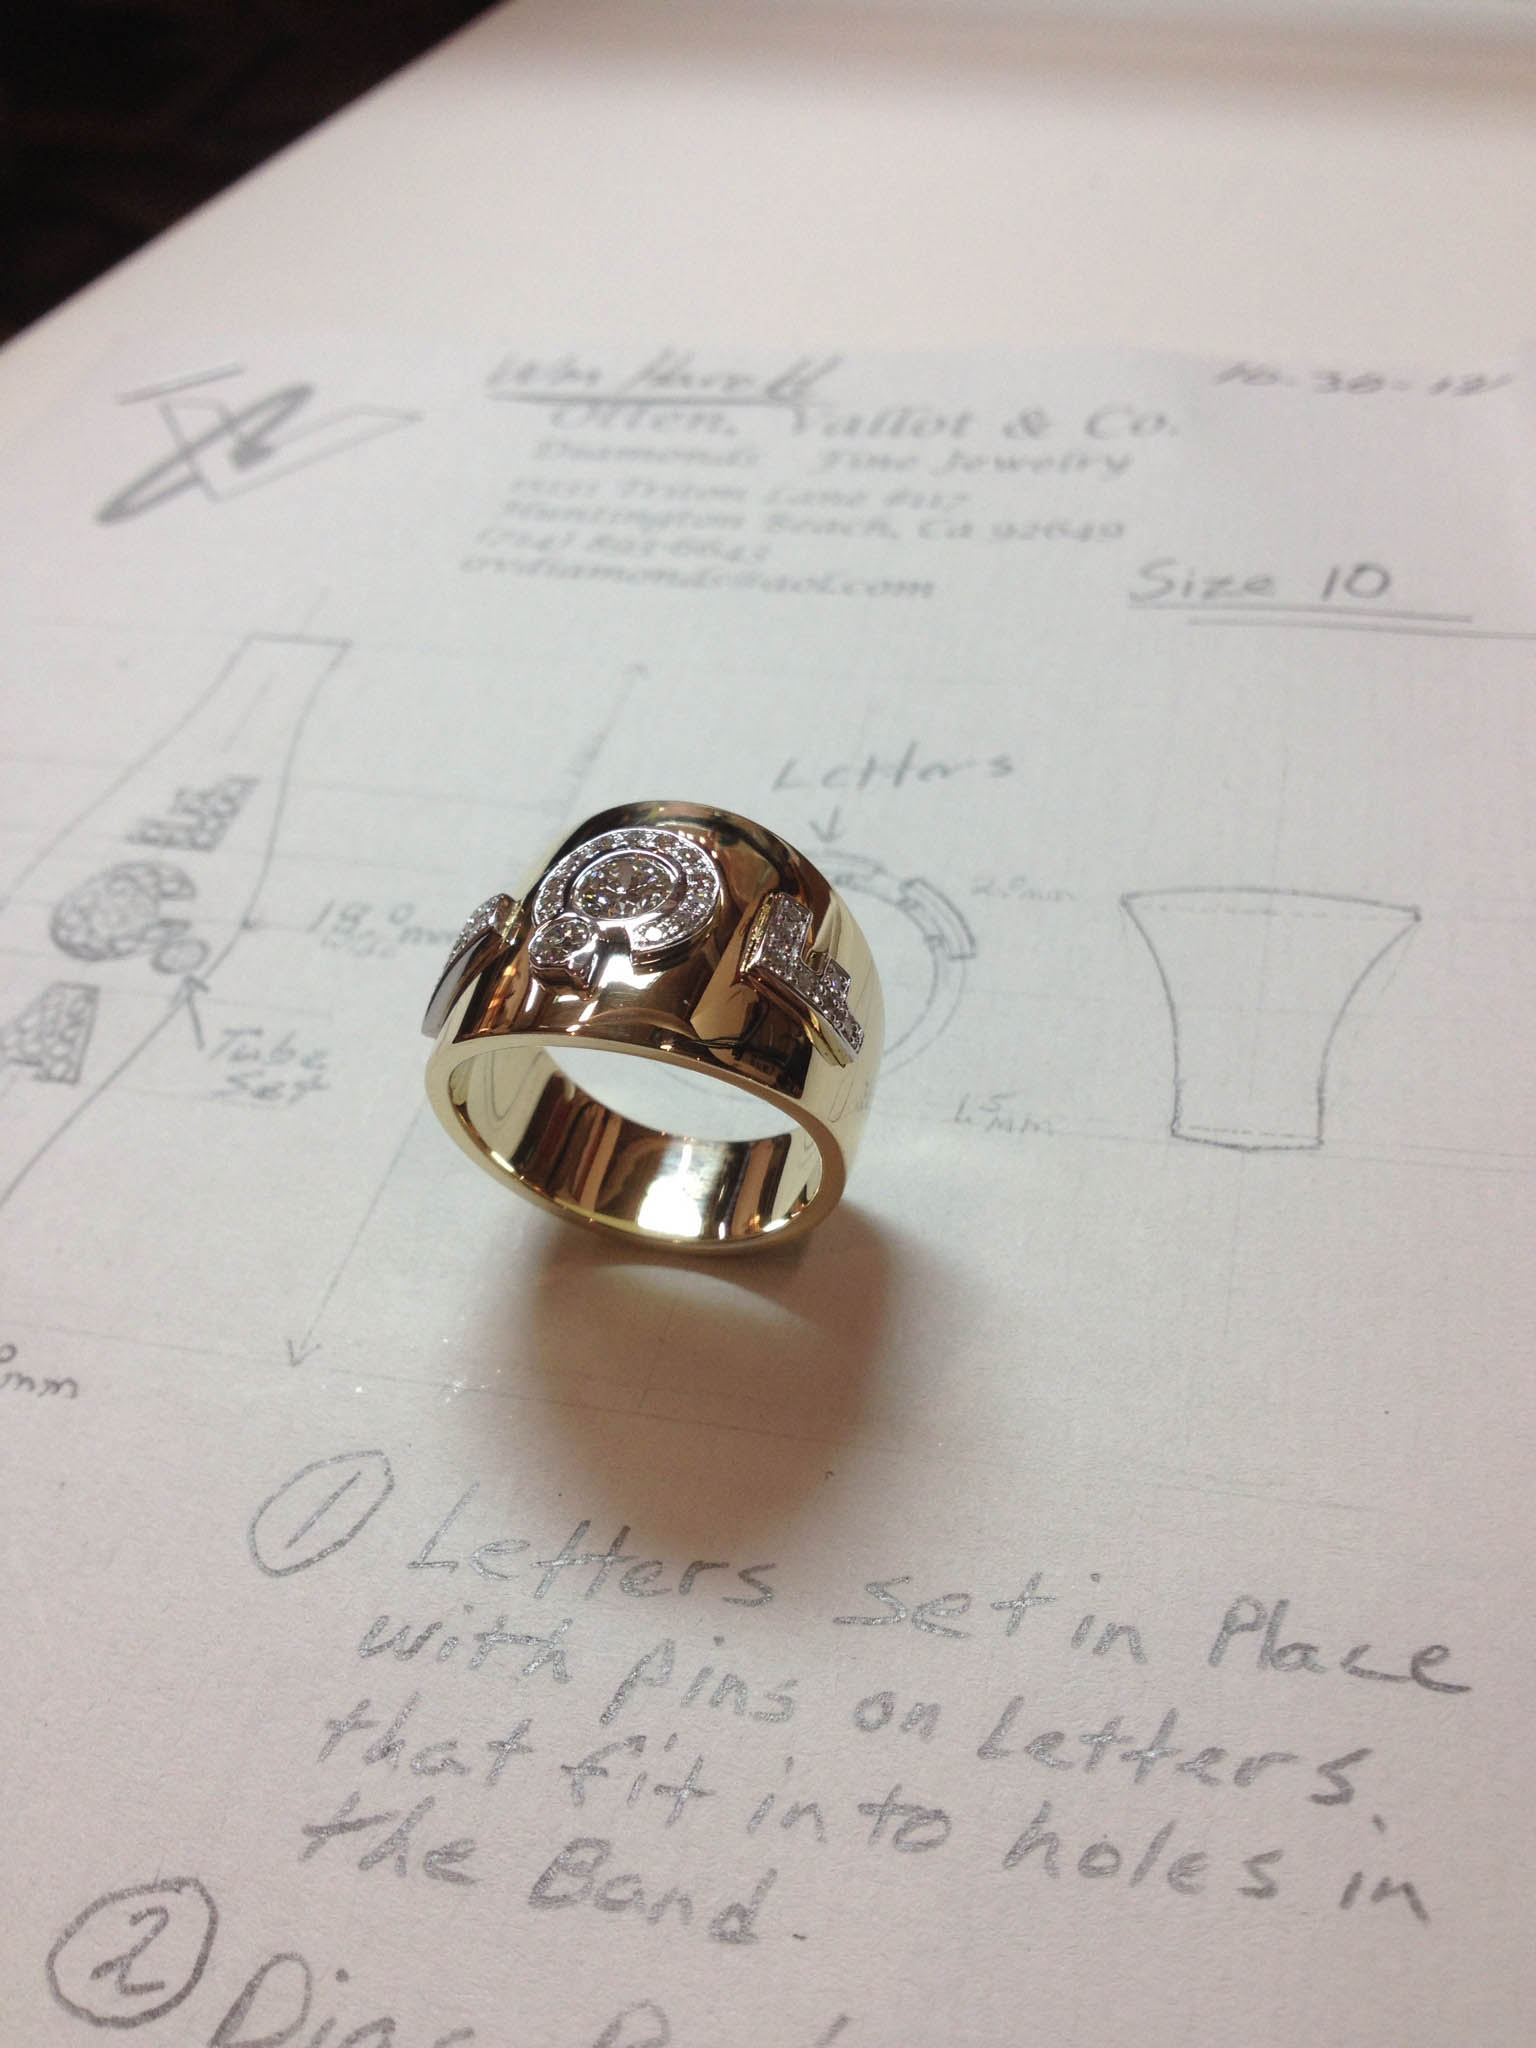 Finished Ring with Sketch